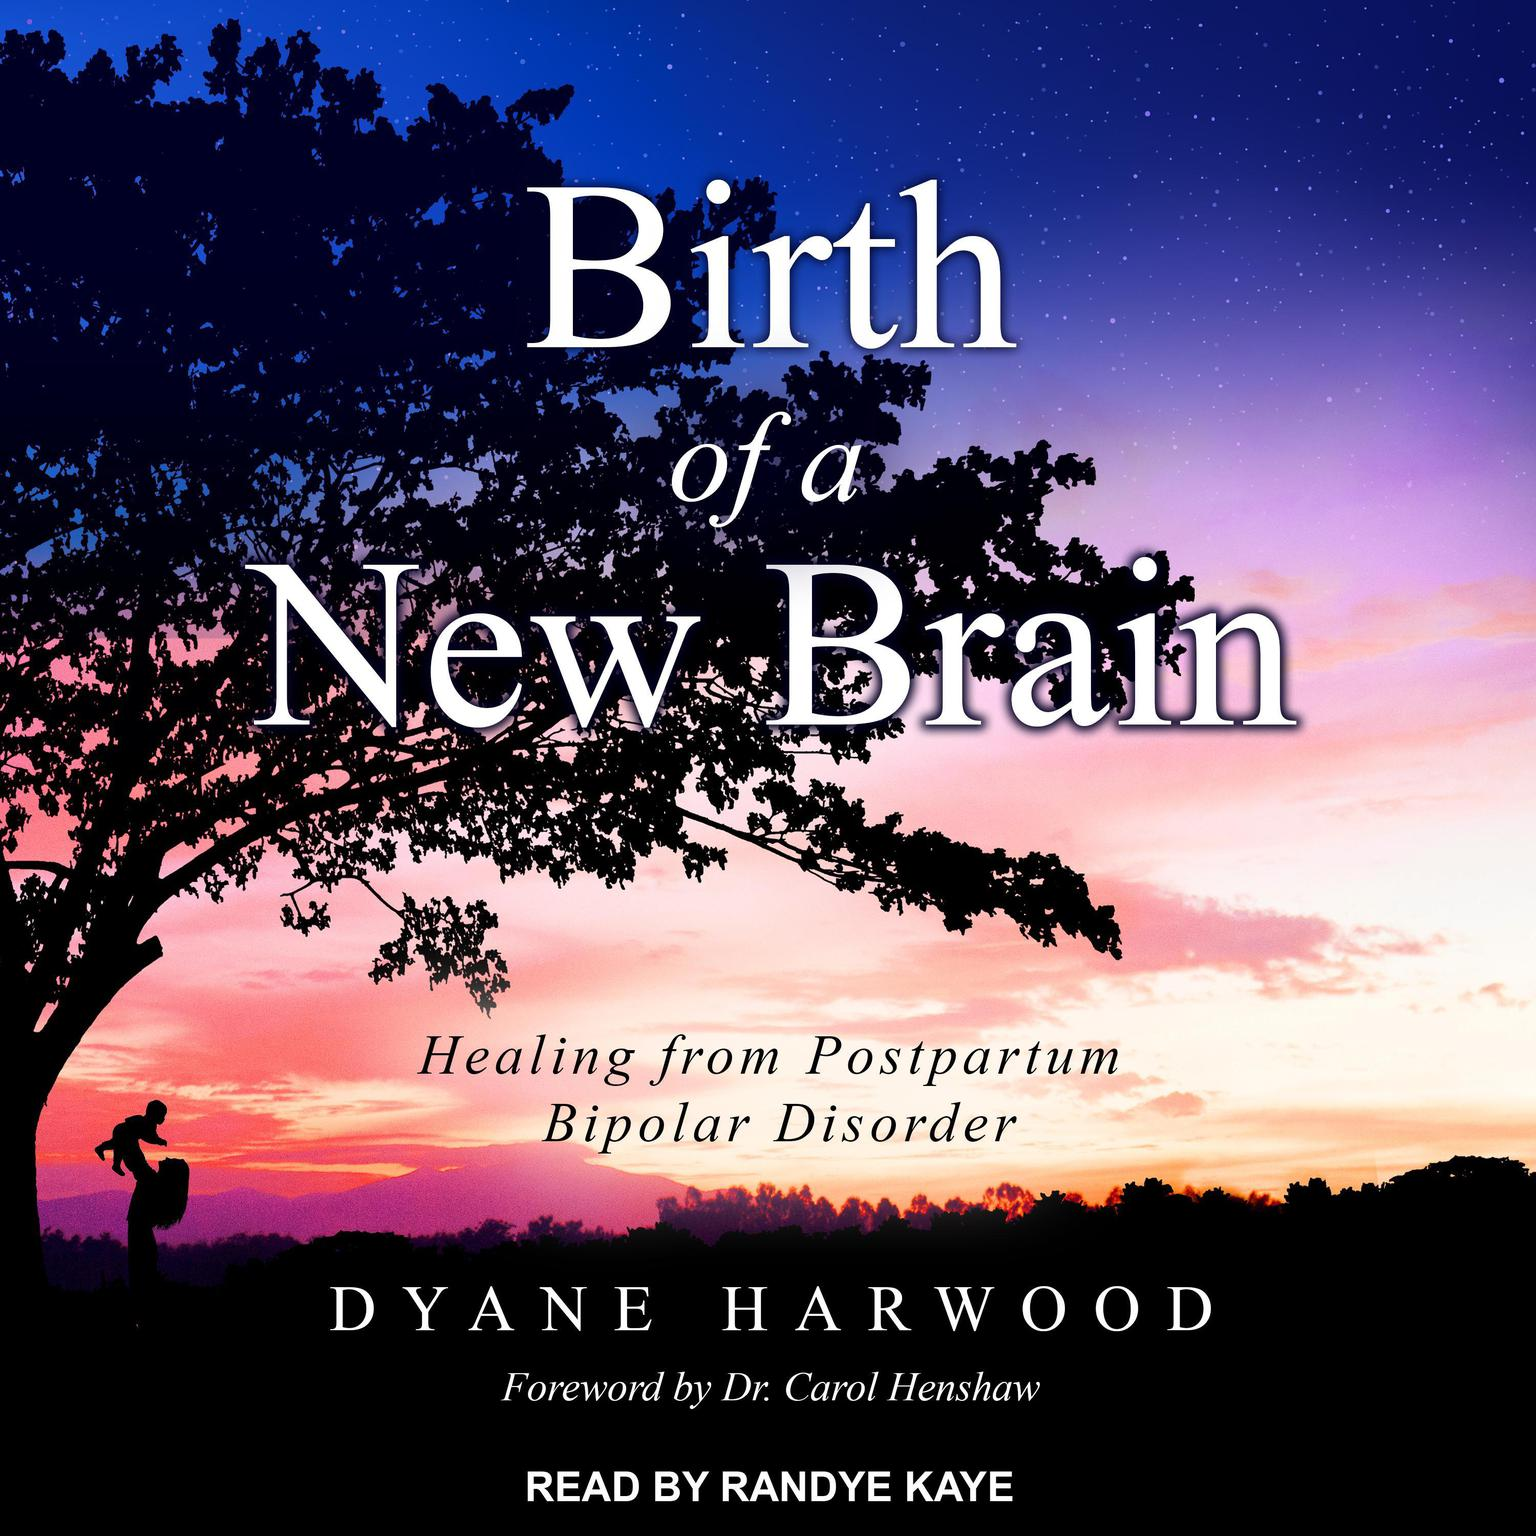 Birth of a New Brain: Healing from Postpartum Bipolar Disorder Audiobook, by Dyane Harwood